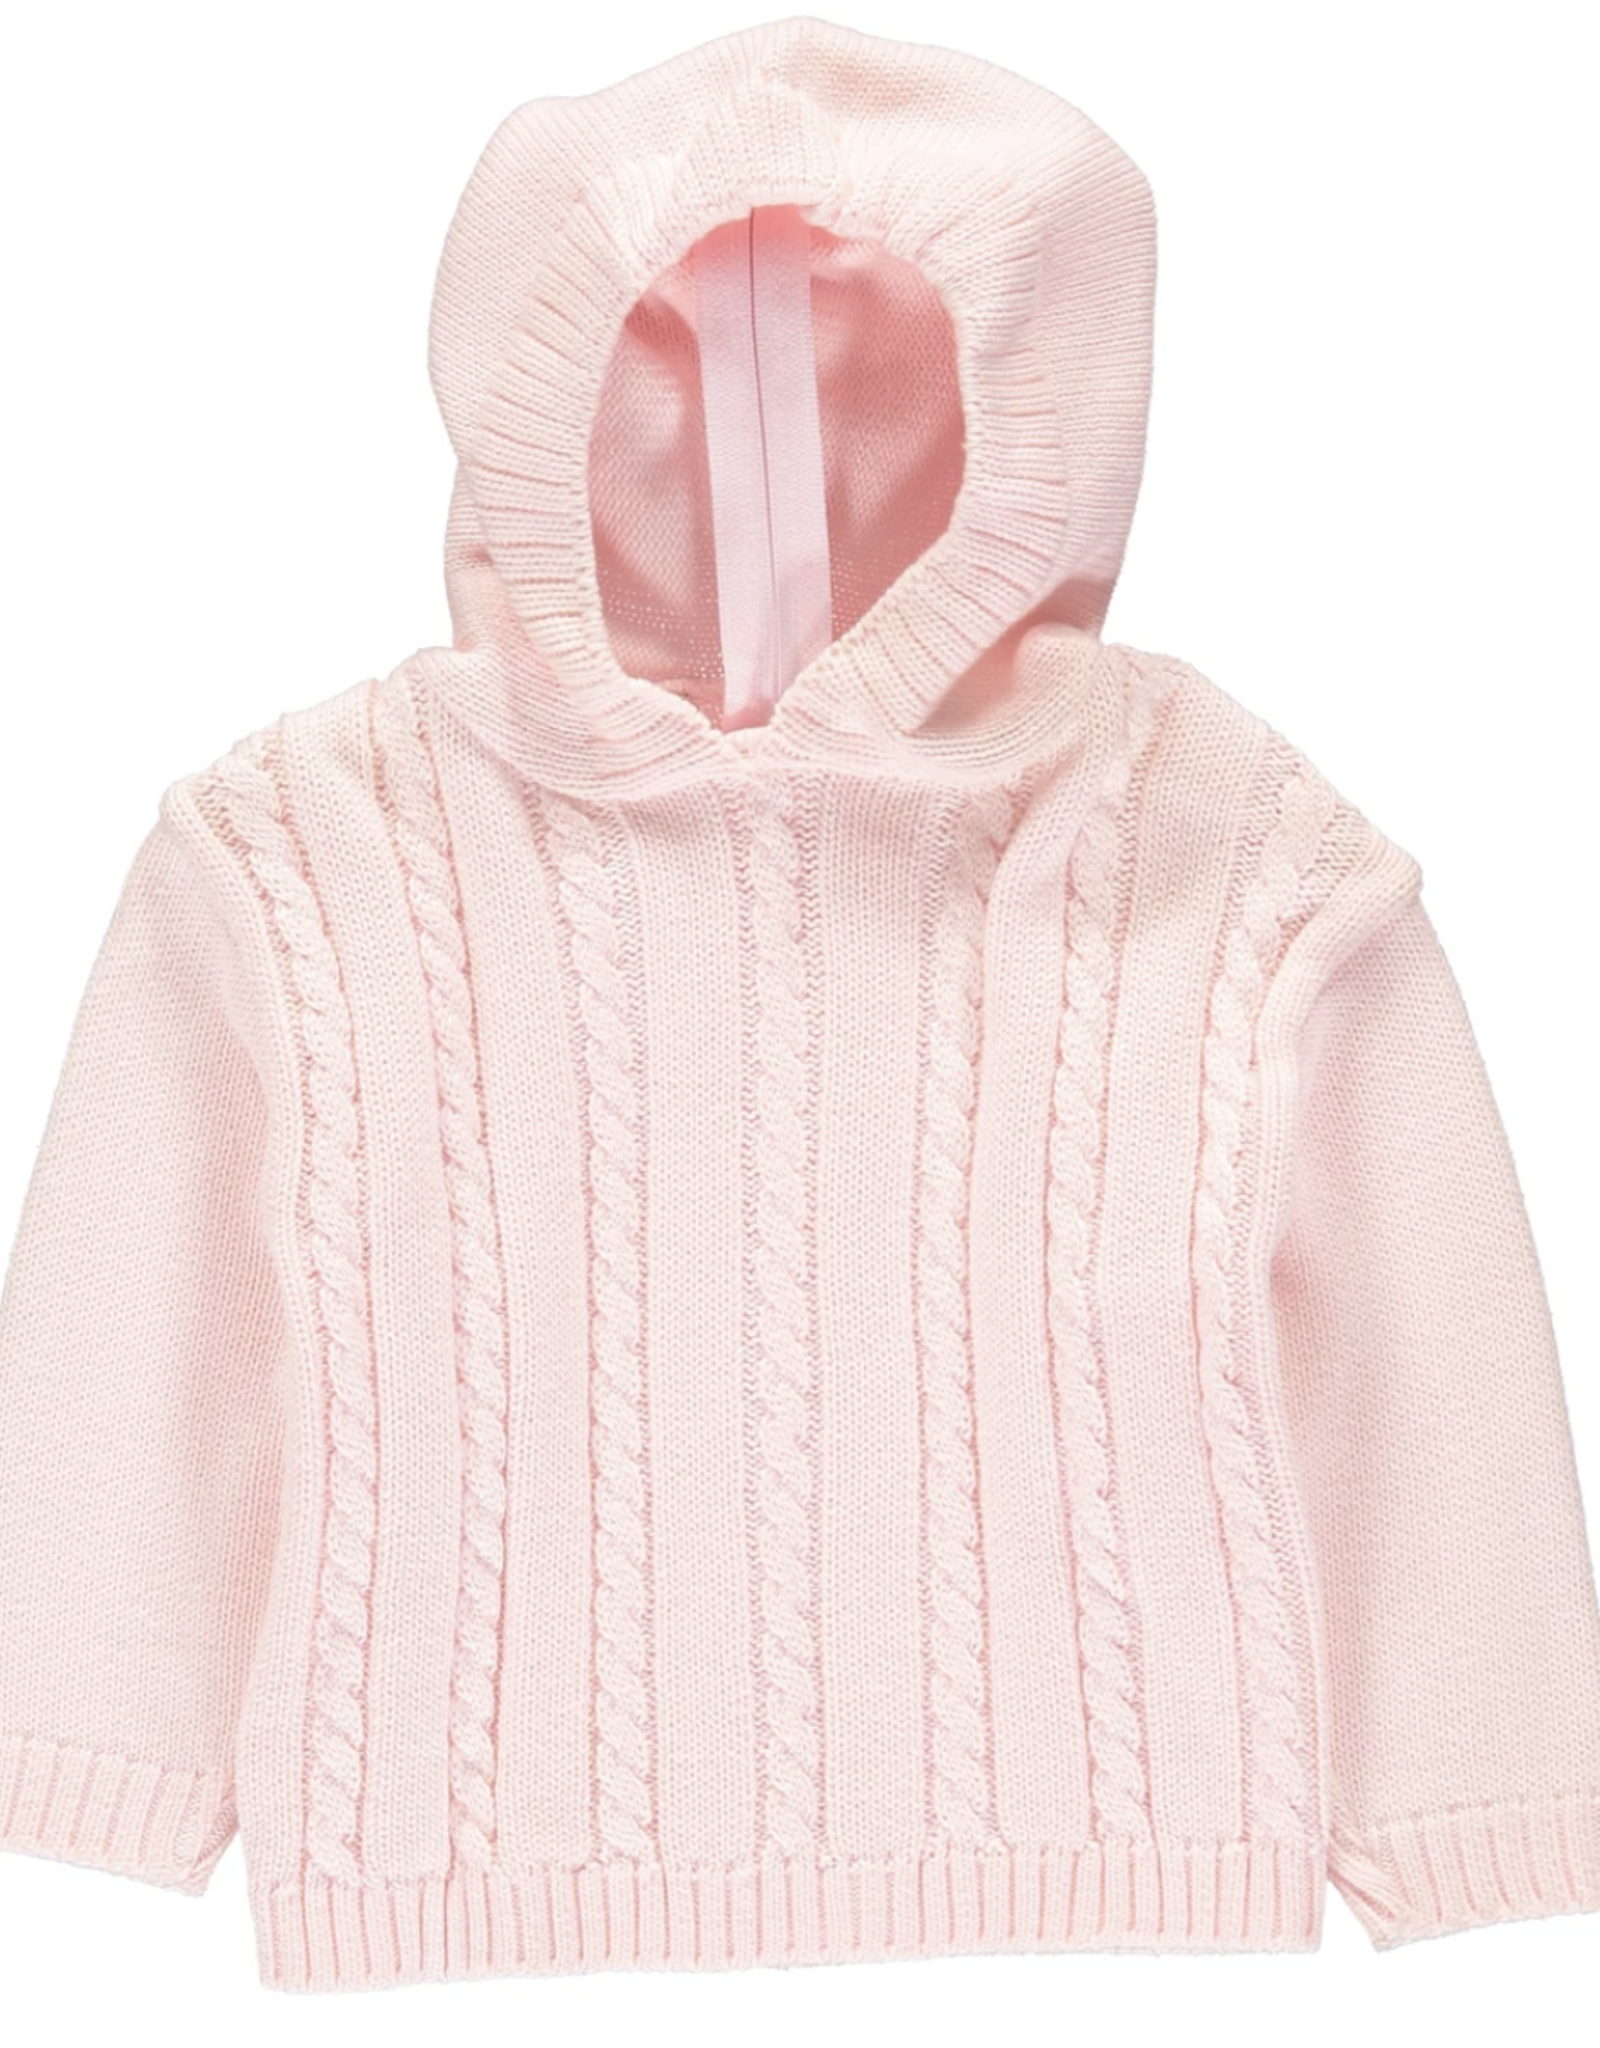 Carriage Boutique Pink Cable Hooded Sweater